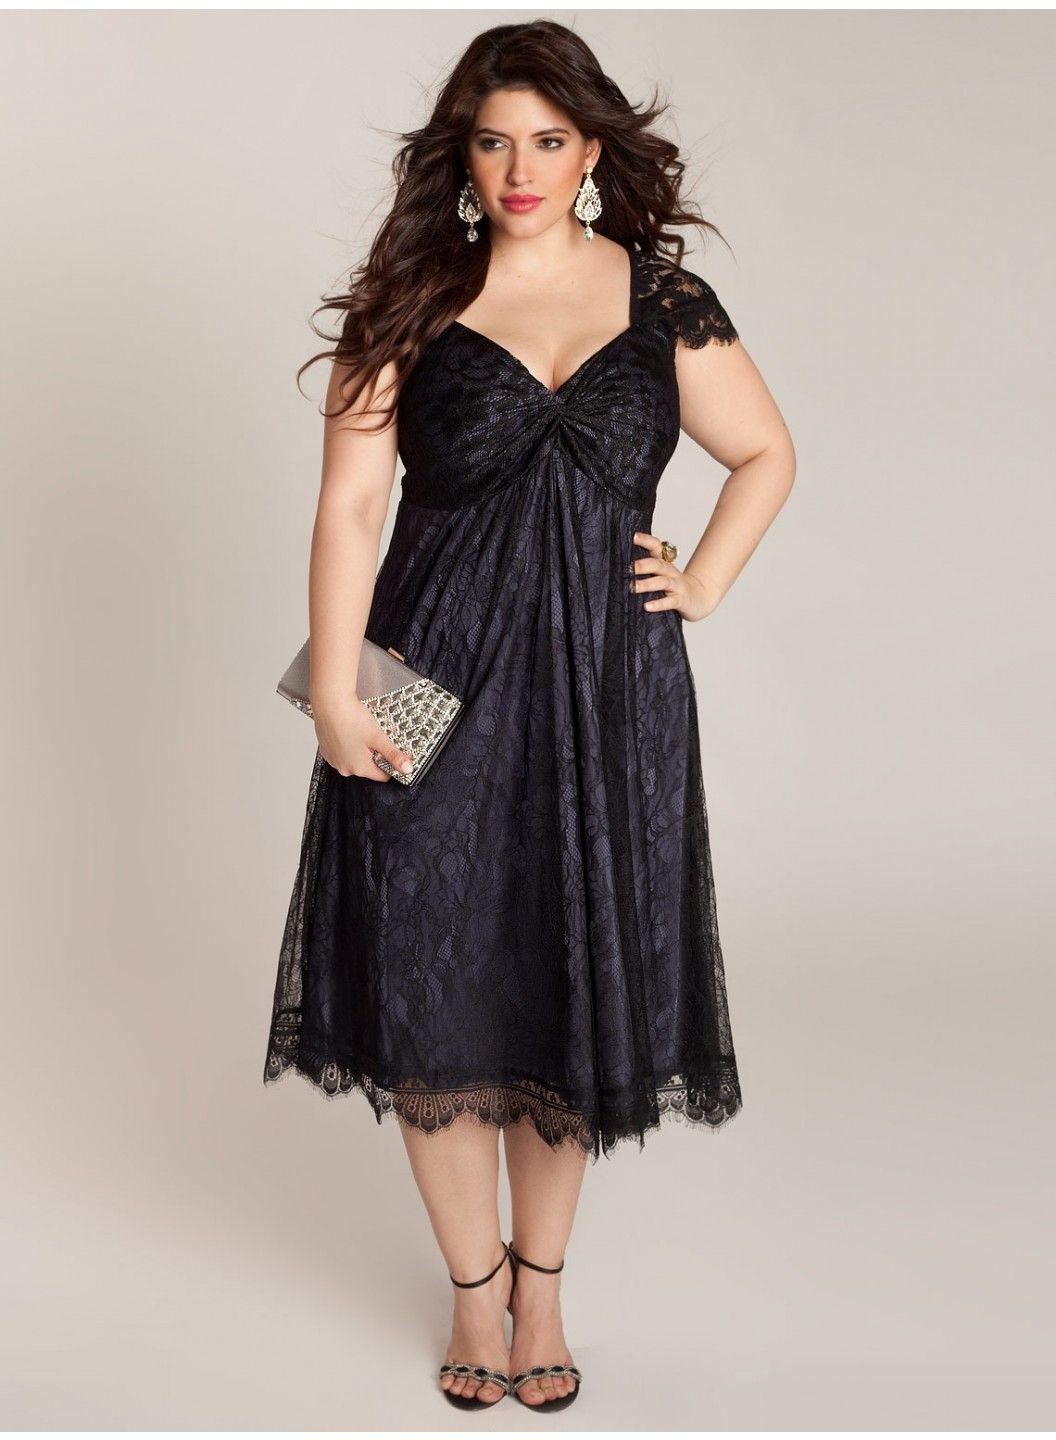 20 Plus Size Evening Dresses to Look Like Queen | Plus size formal ...